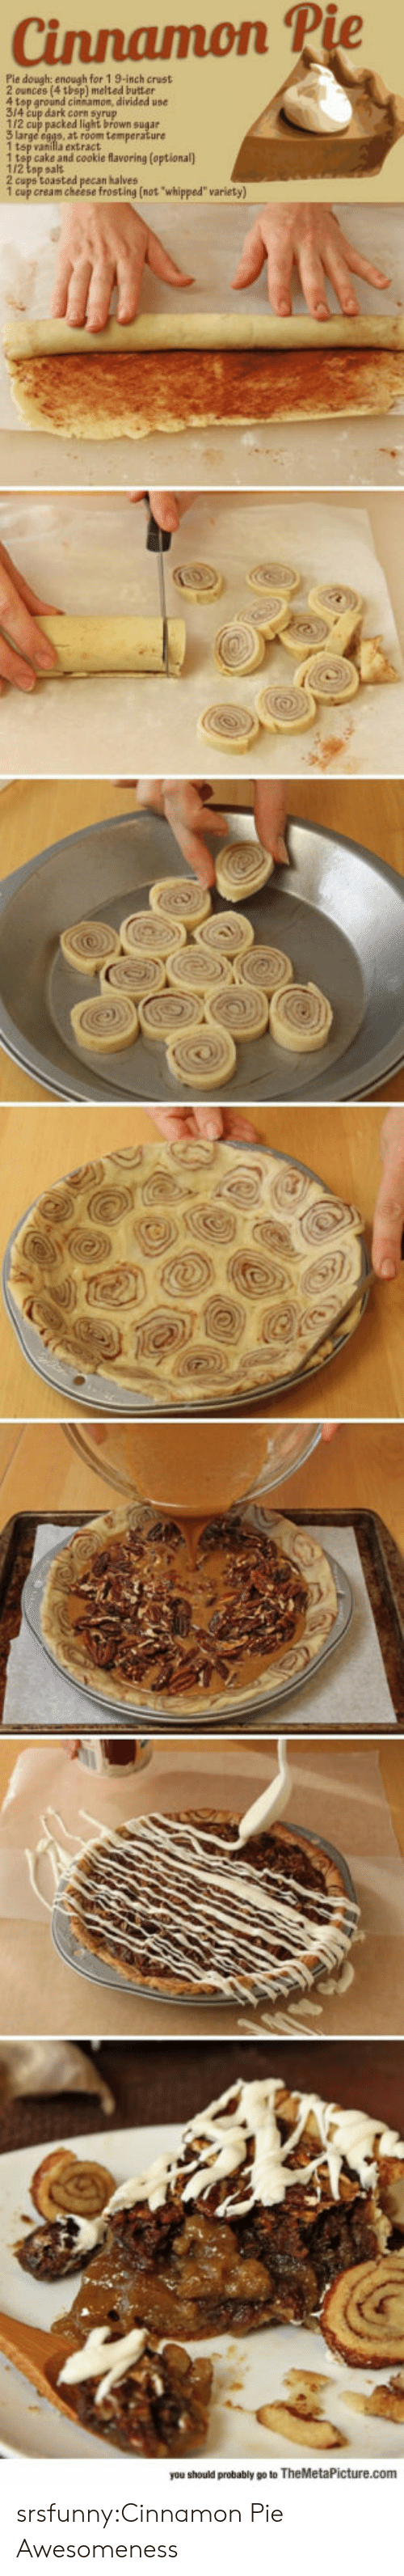 """cream cheese: Cinnamon P  Pie dough: enough for 1 9-inch crust  ) melted butter  4 top ground cinsamon, divided use  314 cup dark corn syrup  112 cup packed light brown sugar  1 tsp vanilla extract  1 tsp cake and cookie flavoring (optional)  1/2 tsp salt  2 cups toasted pecan halves  1 cup cream cheese frosting (not whipped"""" variety)  you should probably go to TheMetaPicture.com srsfunny:Cinnamon Pie Awesomeness"""